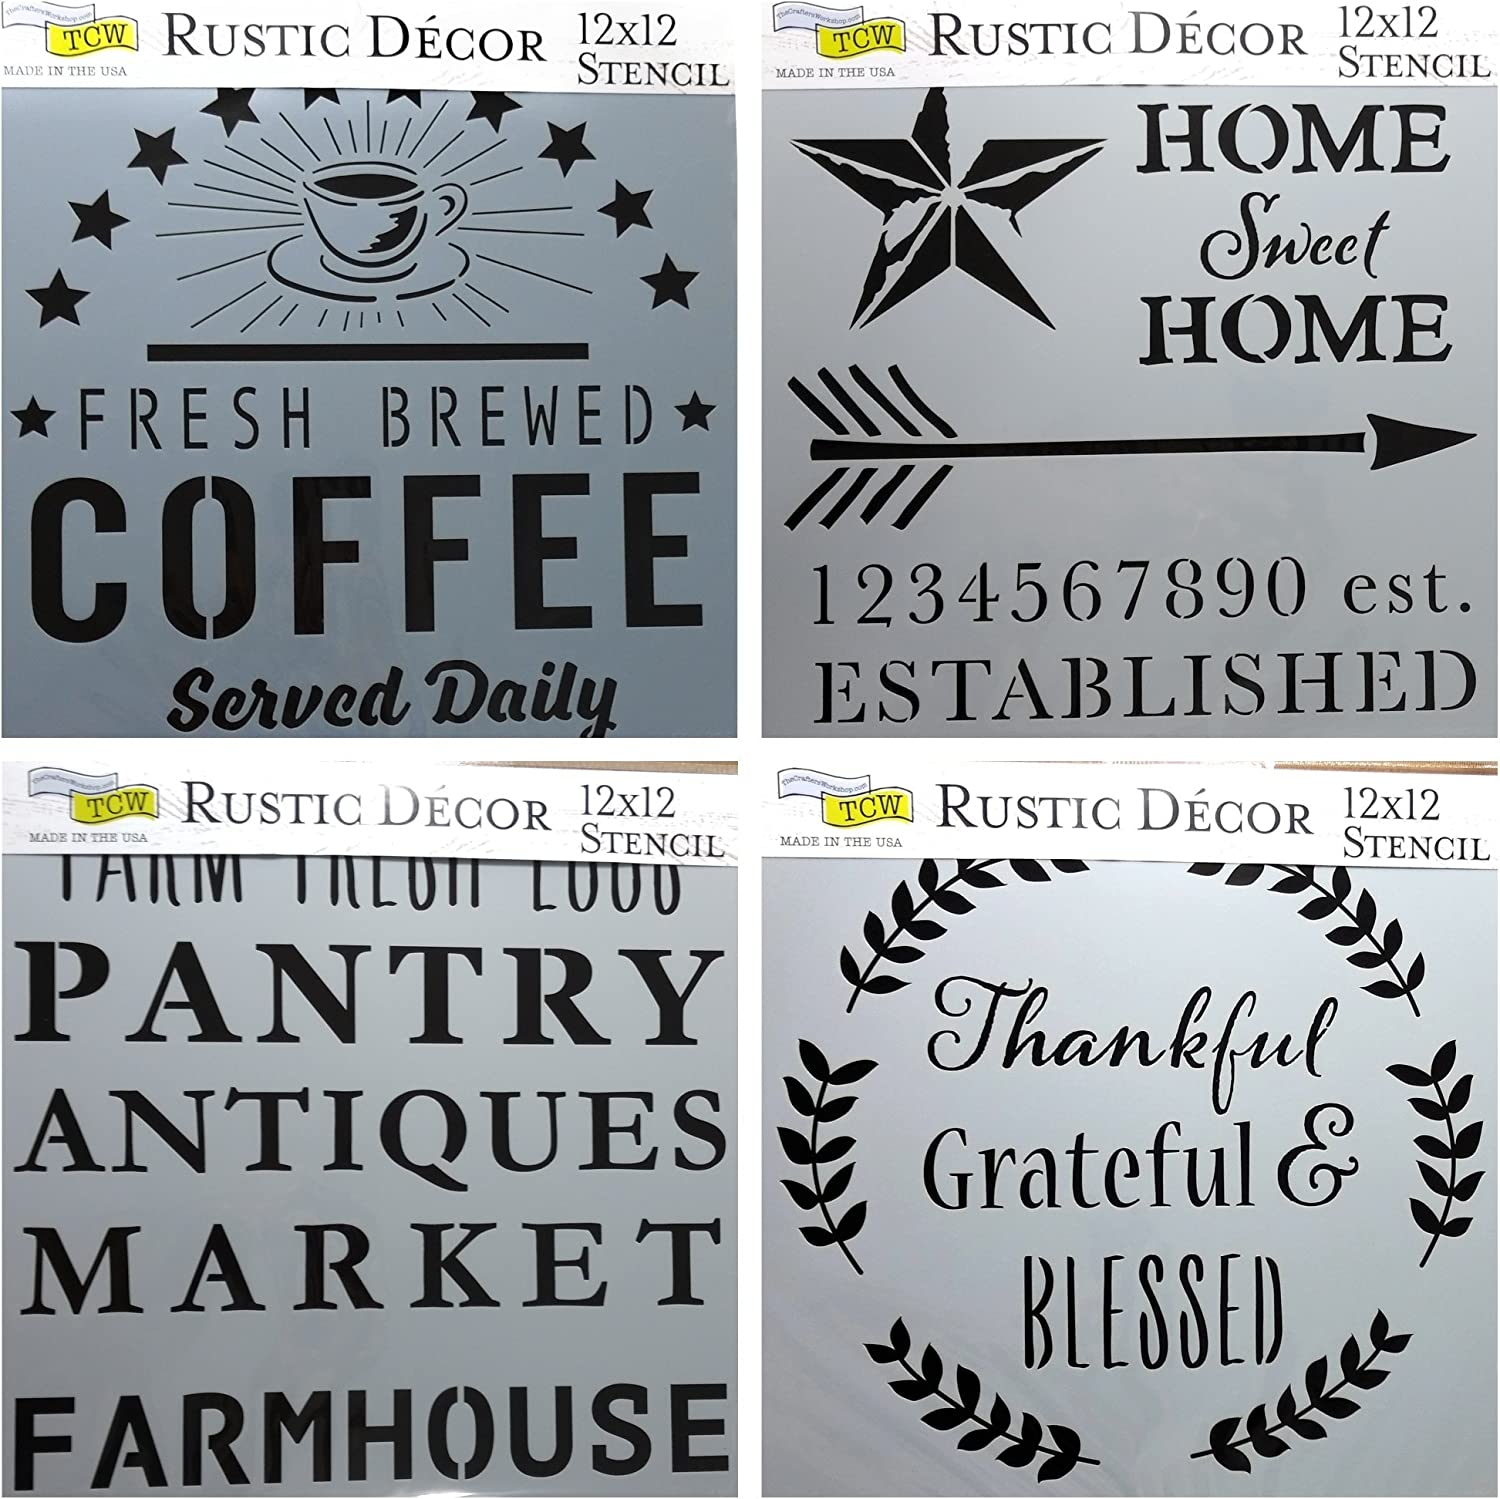 4 Crafters Workshop Mixed Media Stencils Set | for Arts, Card Making, Journaling, Scrapbooking | 12 Inch X 12 Inch Large Templates | Fresh Coffee, Home Sweet, Rustic Signs, Thankful